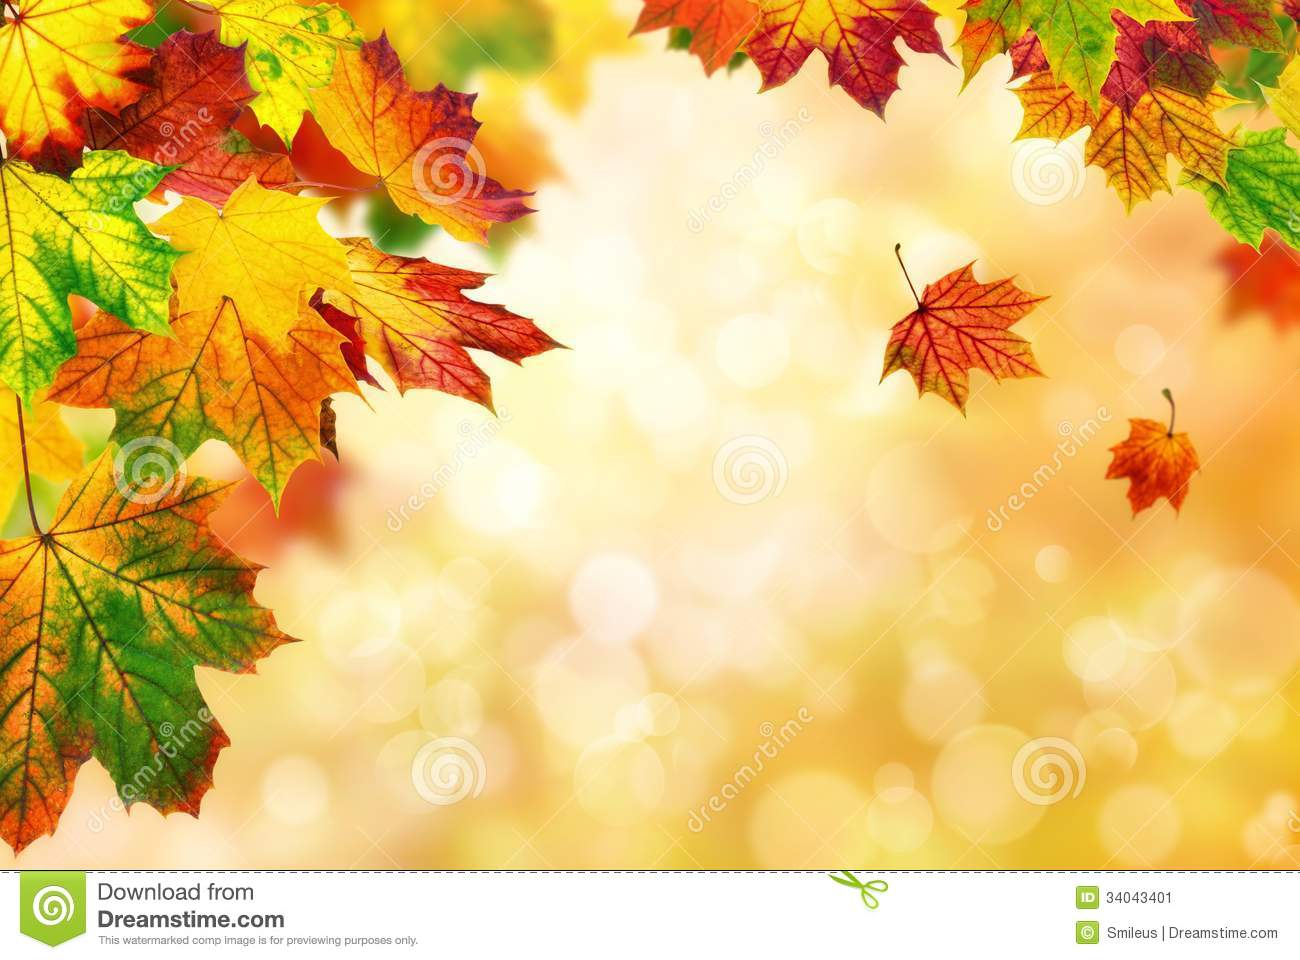 3d Falling Leaves Animated Wallpaper Autumn Bokeh Background Bordered With Leaves Stock Image